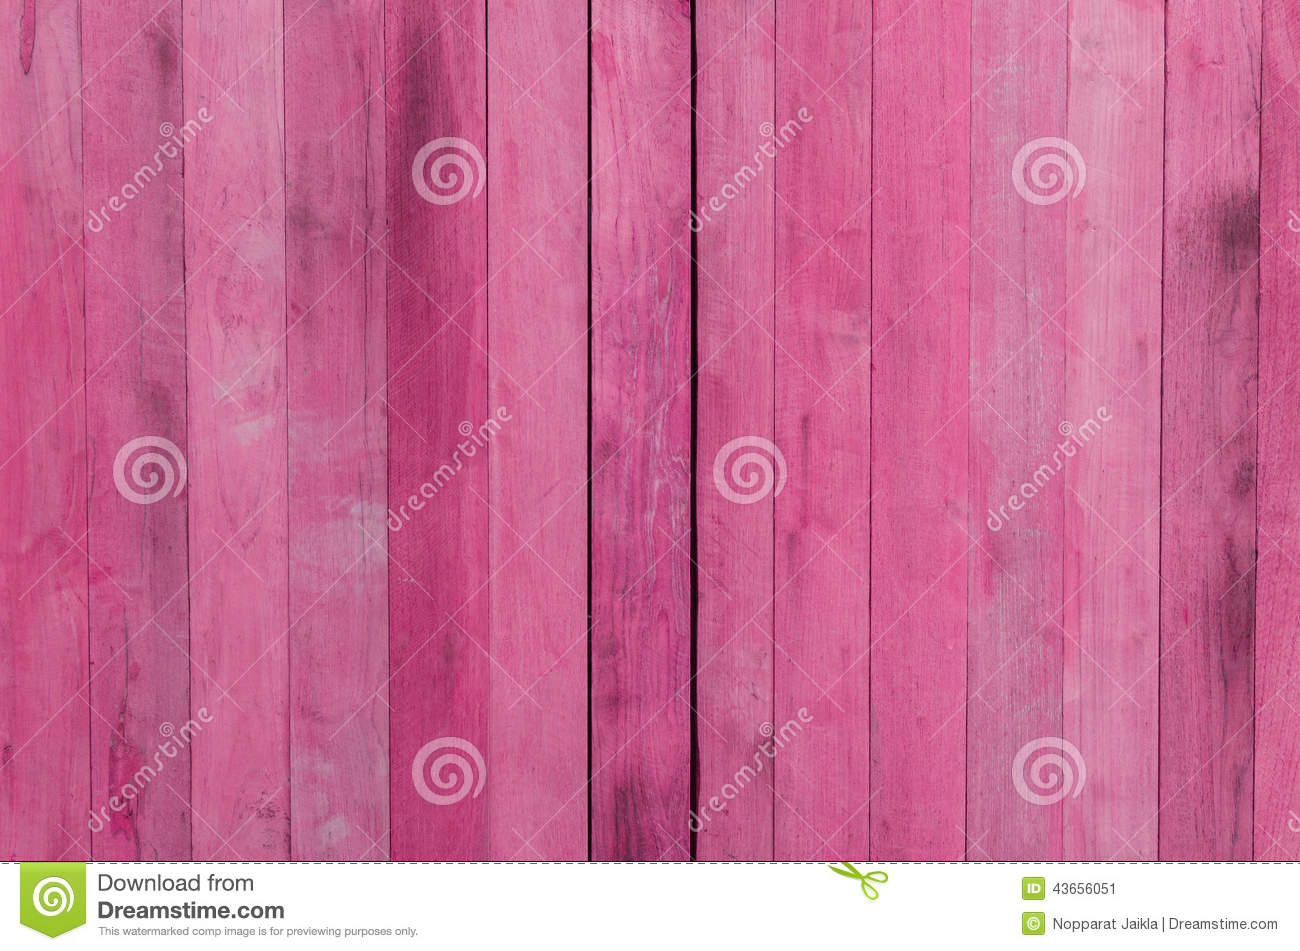 Pink Wood Texture Background Stock Photo - Image: 43656051 Pink Wood Background Pattern